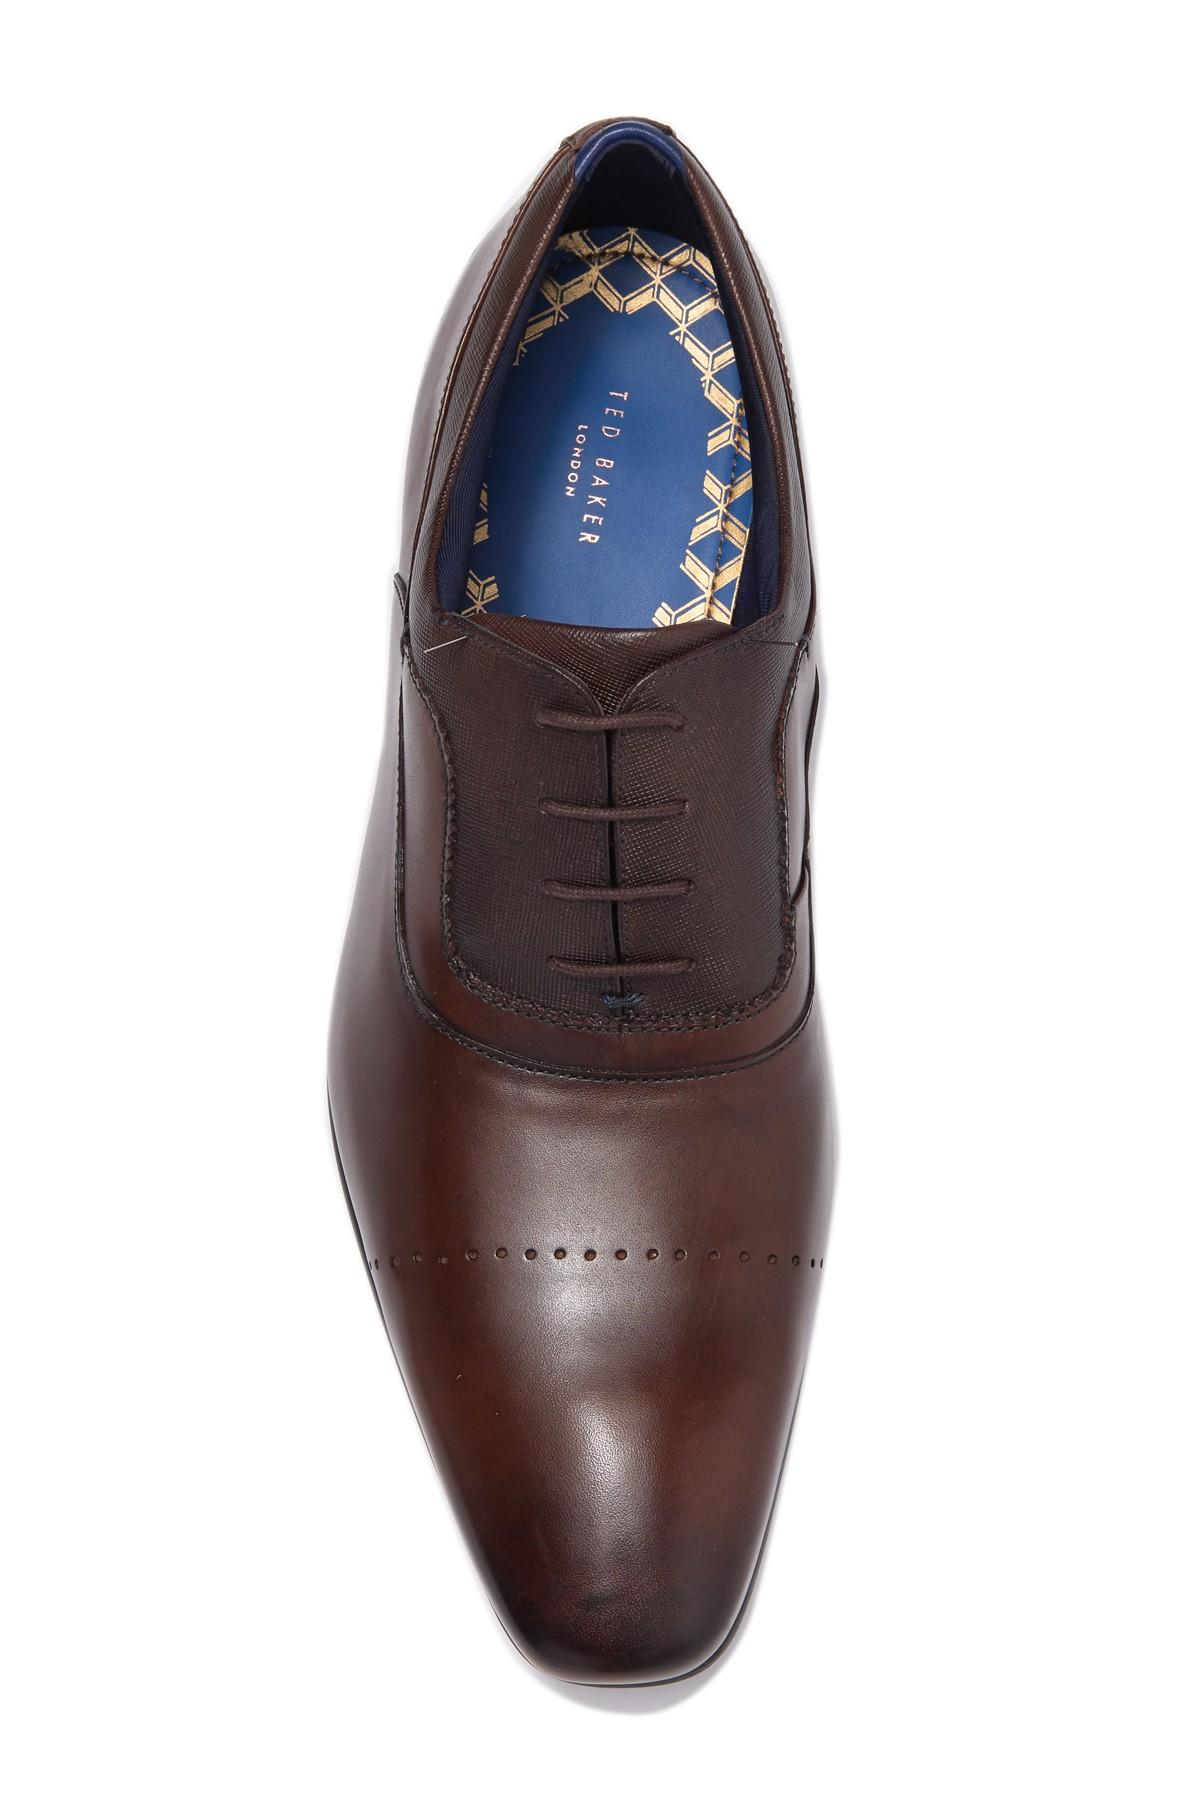 Ted Baker Mens INESCE Oxford 13 M US TAN Leather